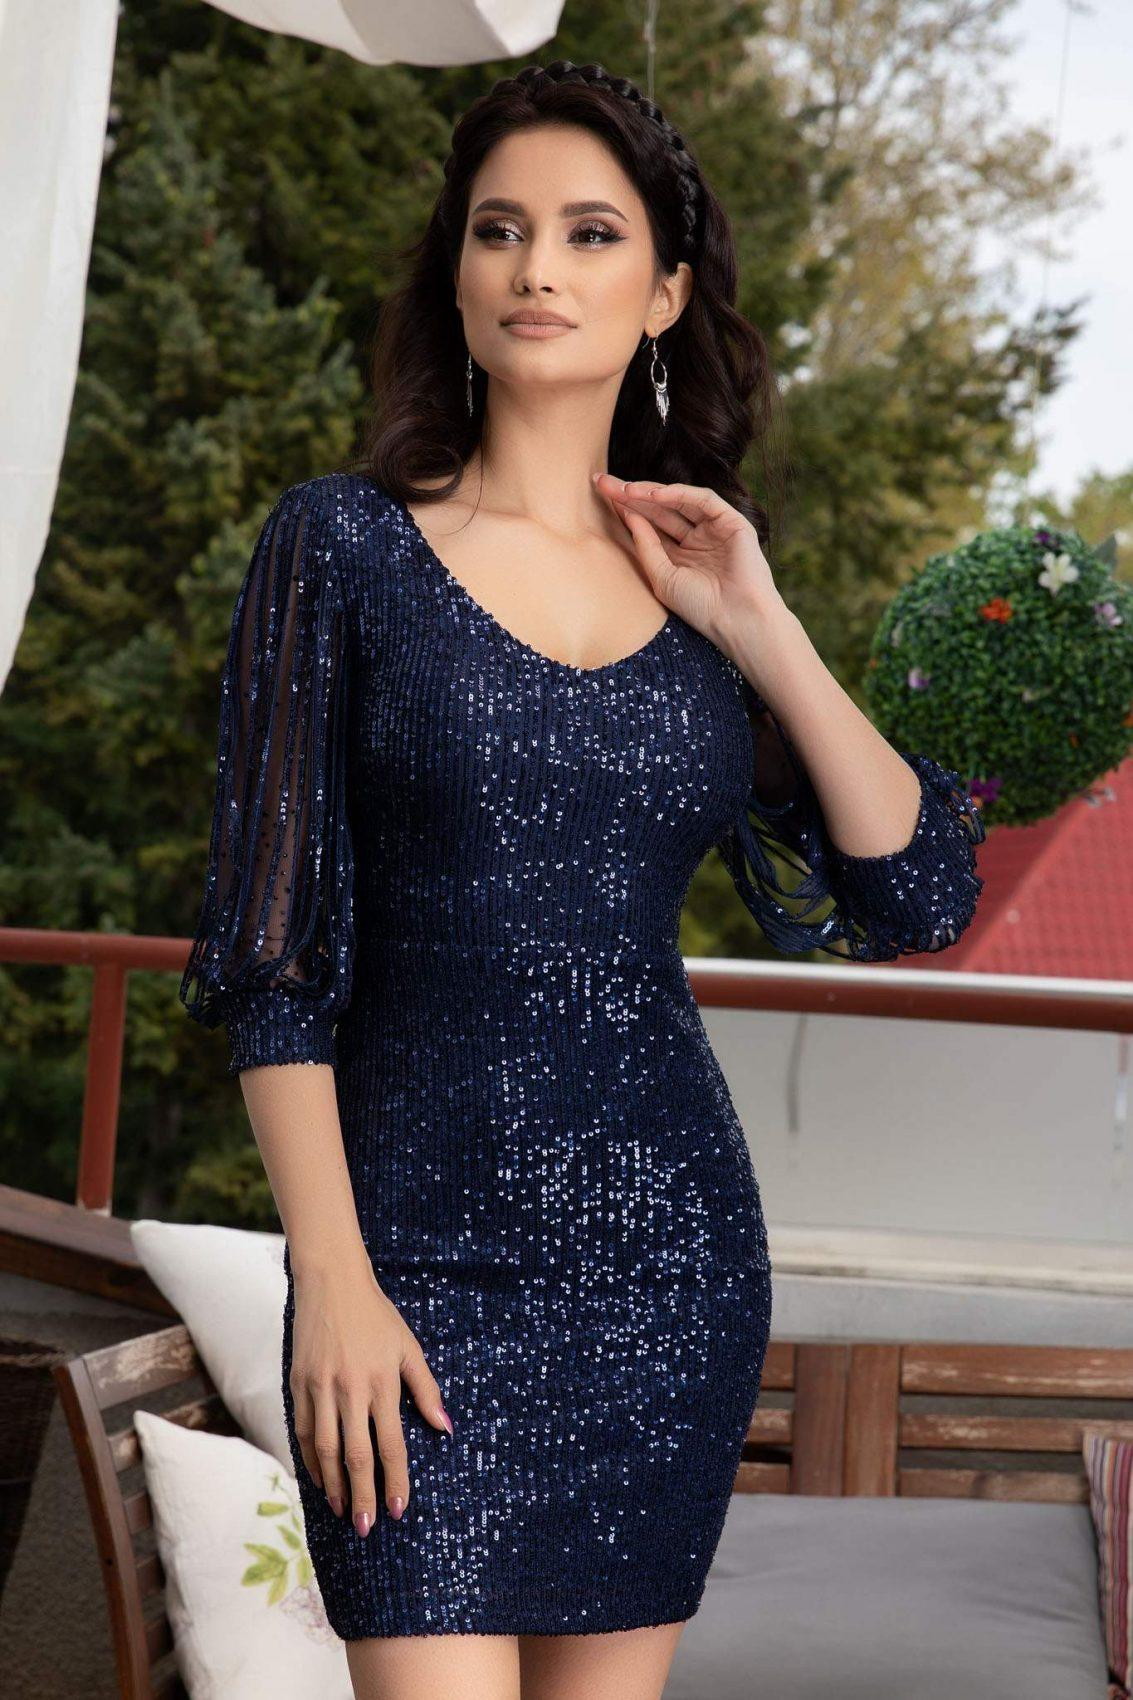 Katriss Navy Dress